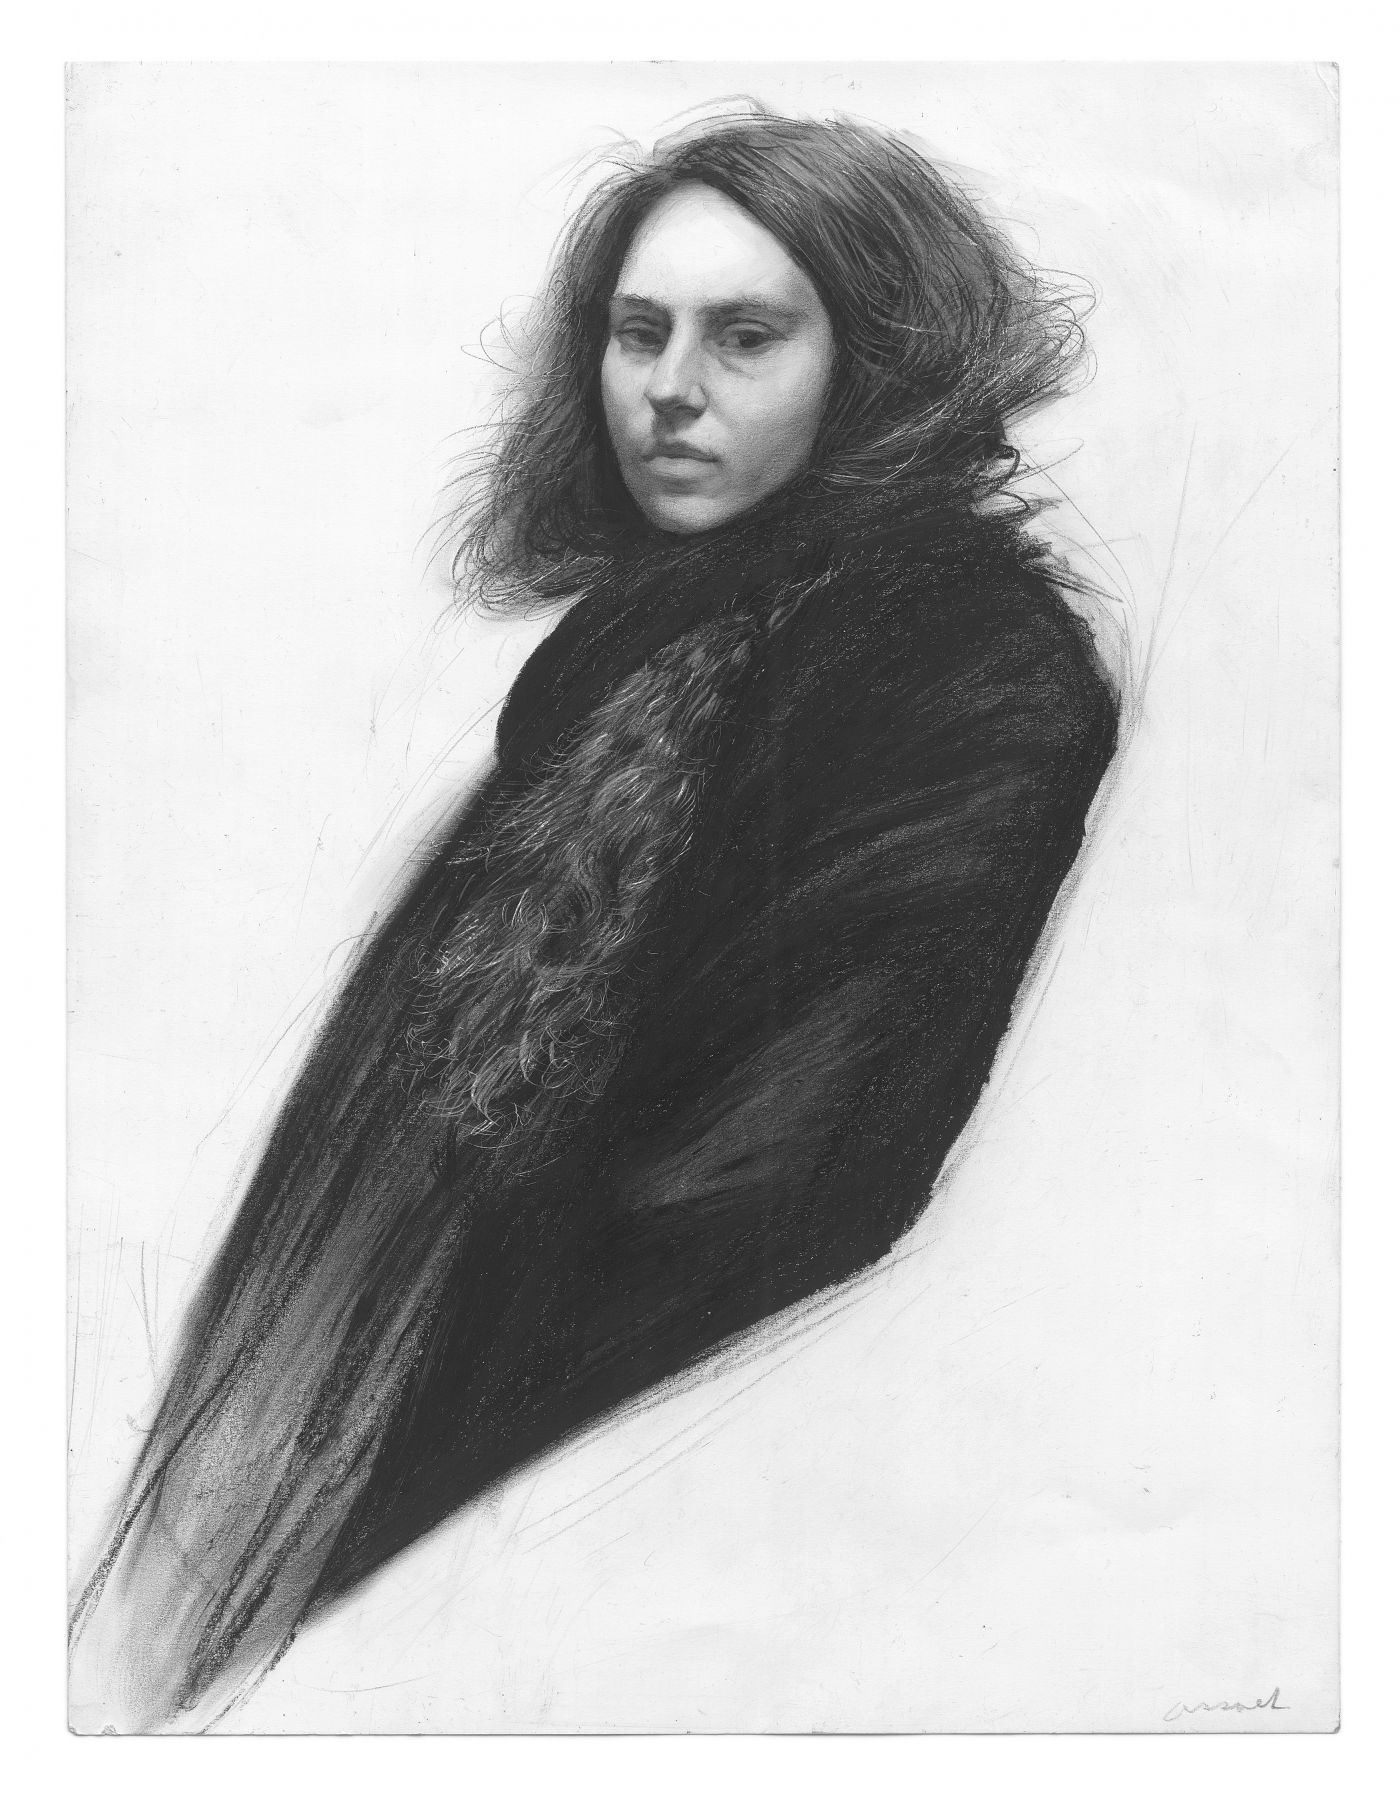 Steven Assael, Julie with Scarf, 2013, graphite and crayon on paper, 14 x 10 3/4 inches